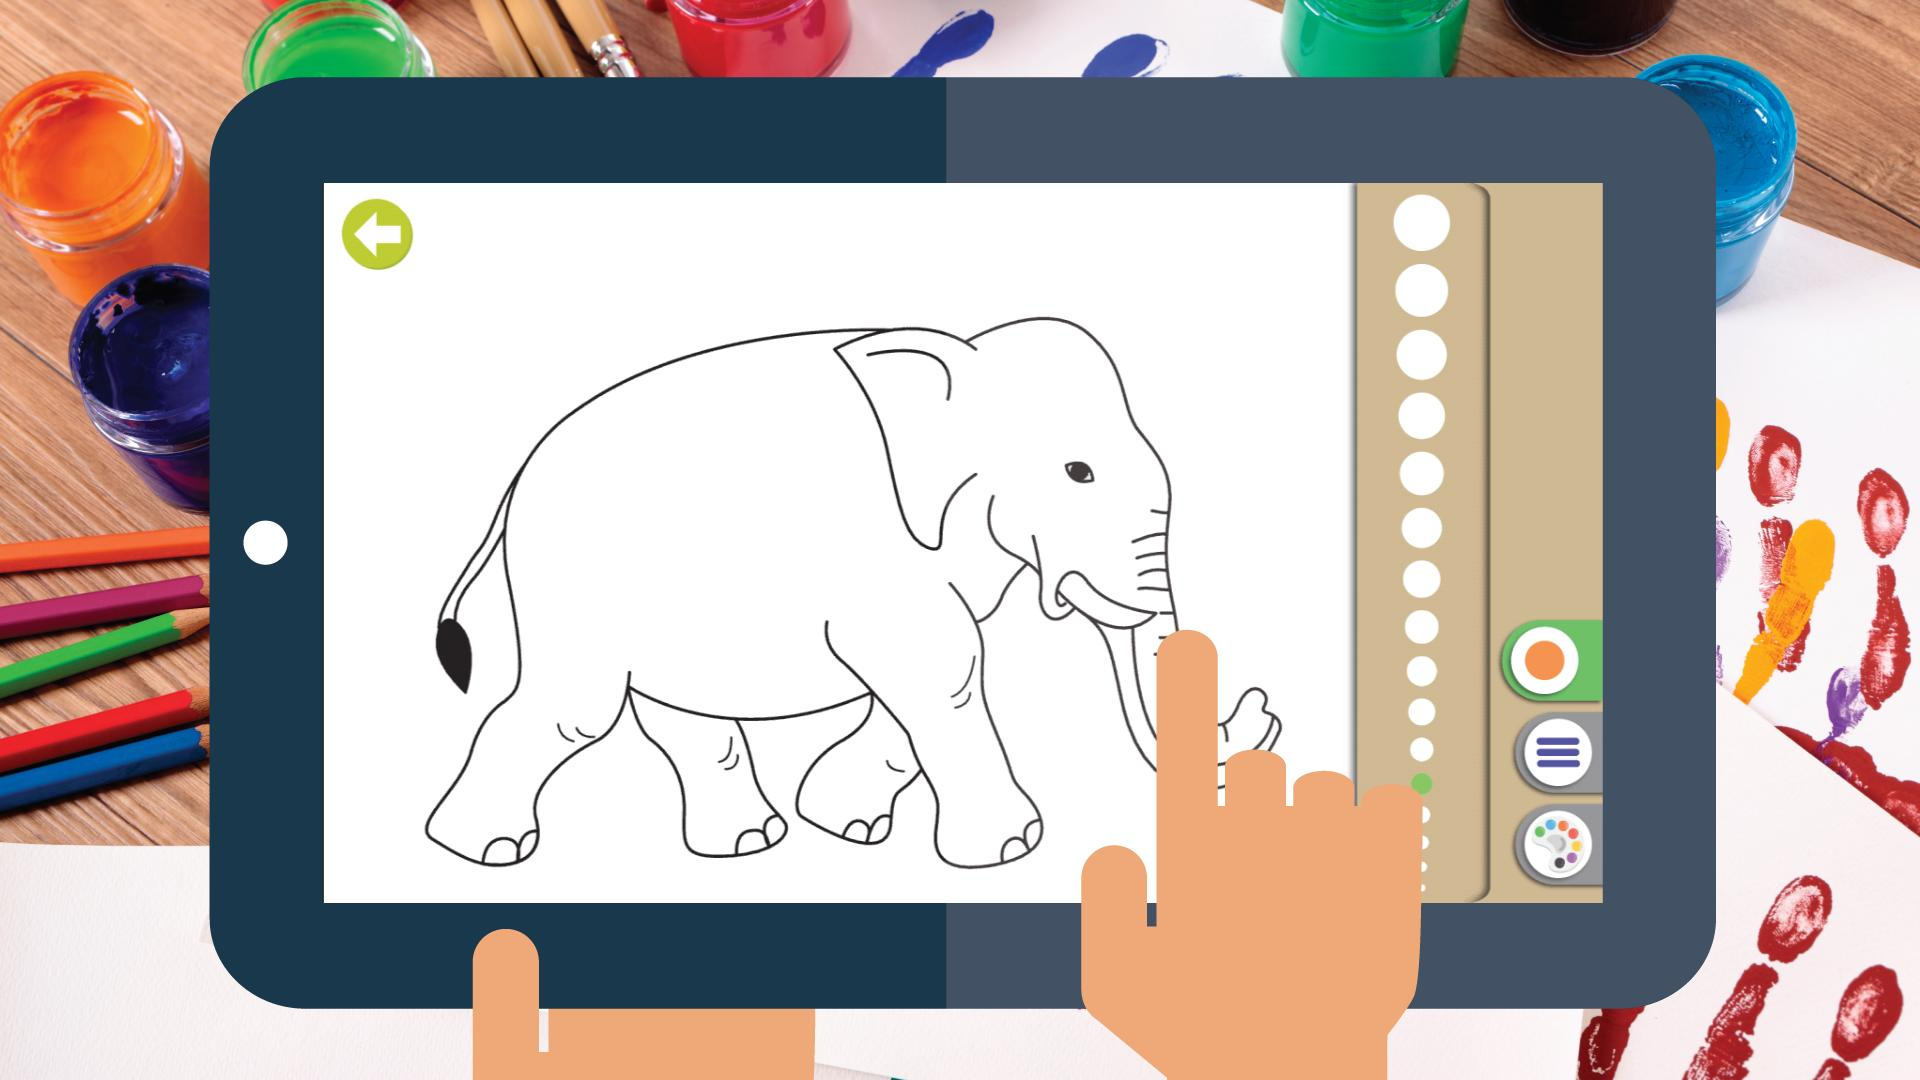 Coloring book for kids for Android - APK Download